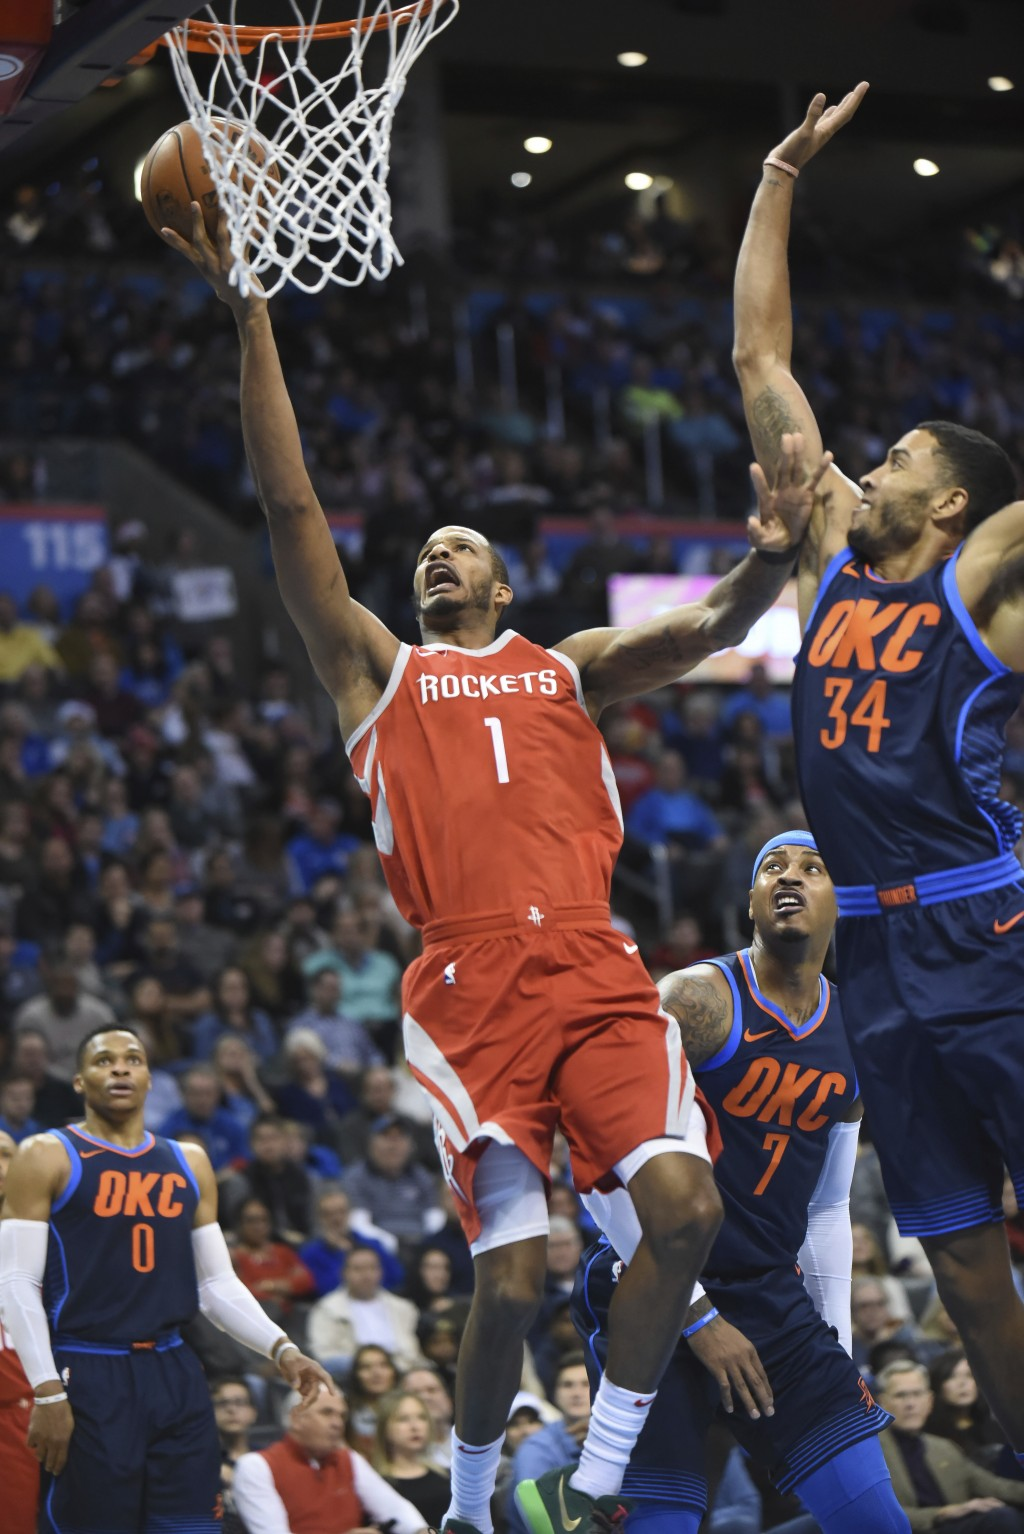 Houston Rockets' Trevor Ariza (1) shoots the ball around Oklahoma City Thunders' Josh Heustis (34) in the first quarter of an NBA basketball game in O...